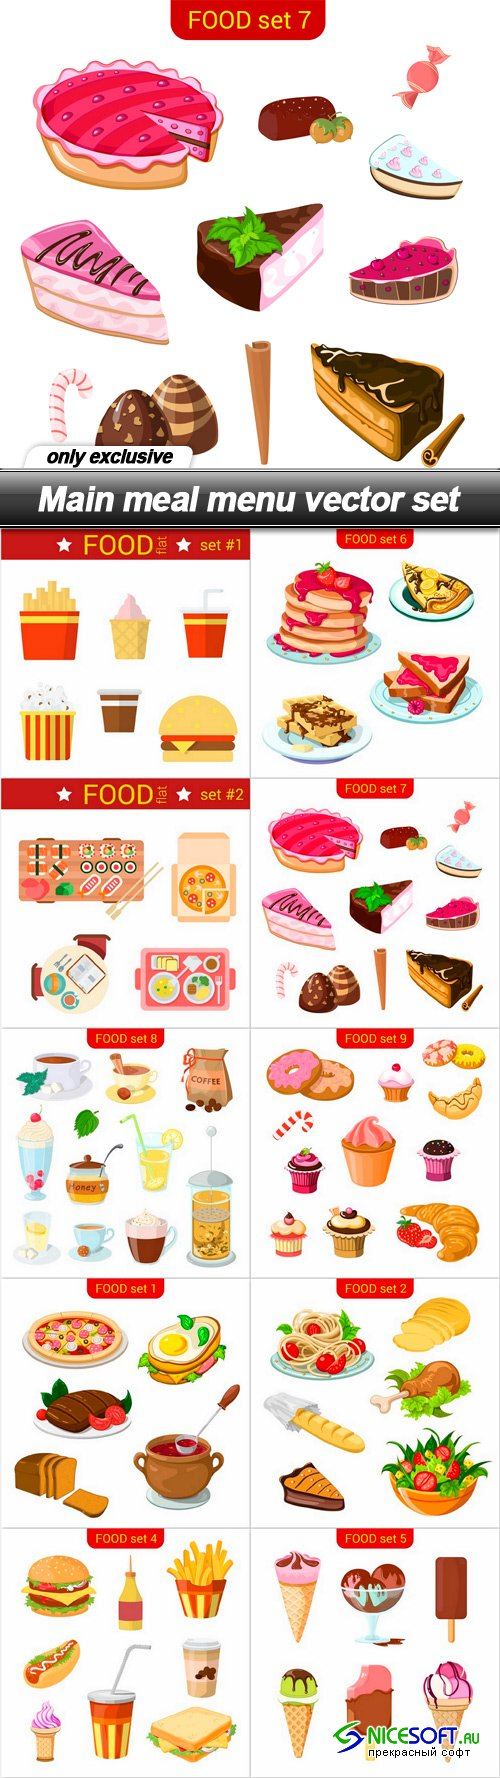 Main meal menu vector set